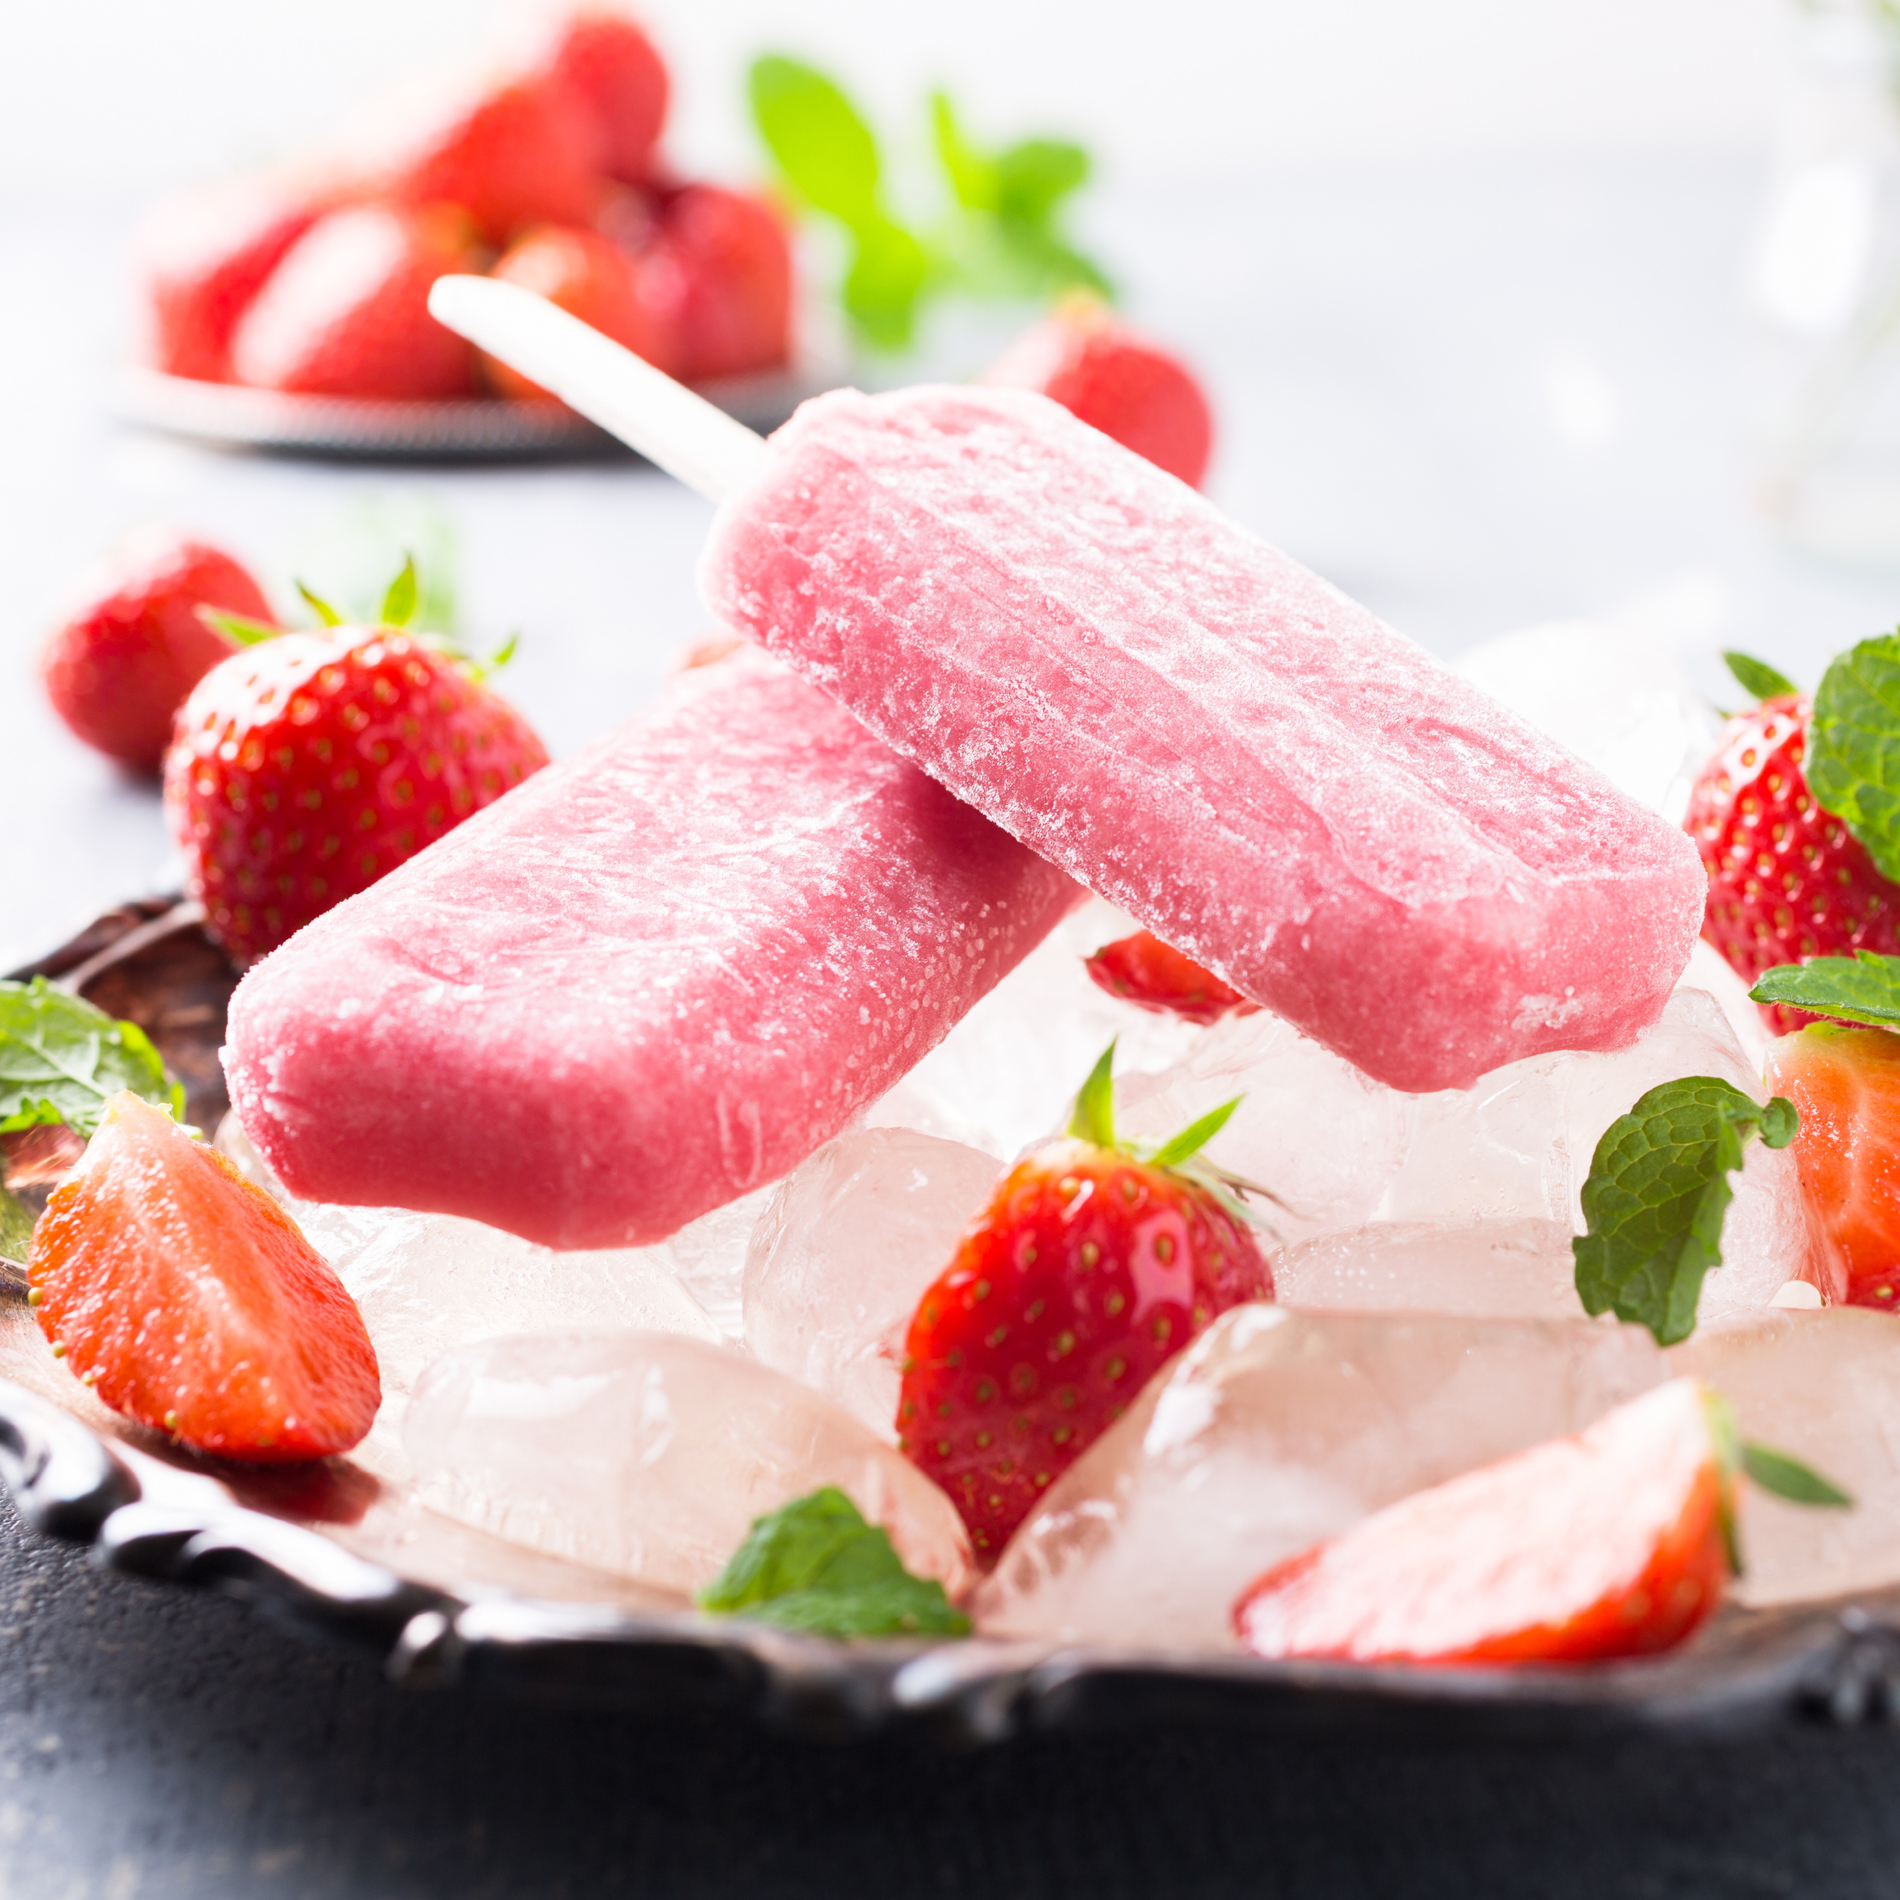 Strawberry popsicle ice 53399